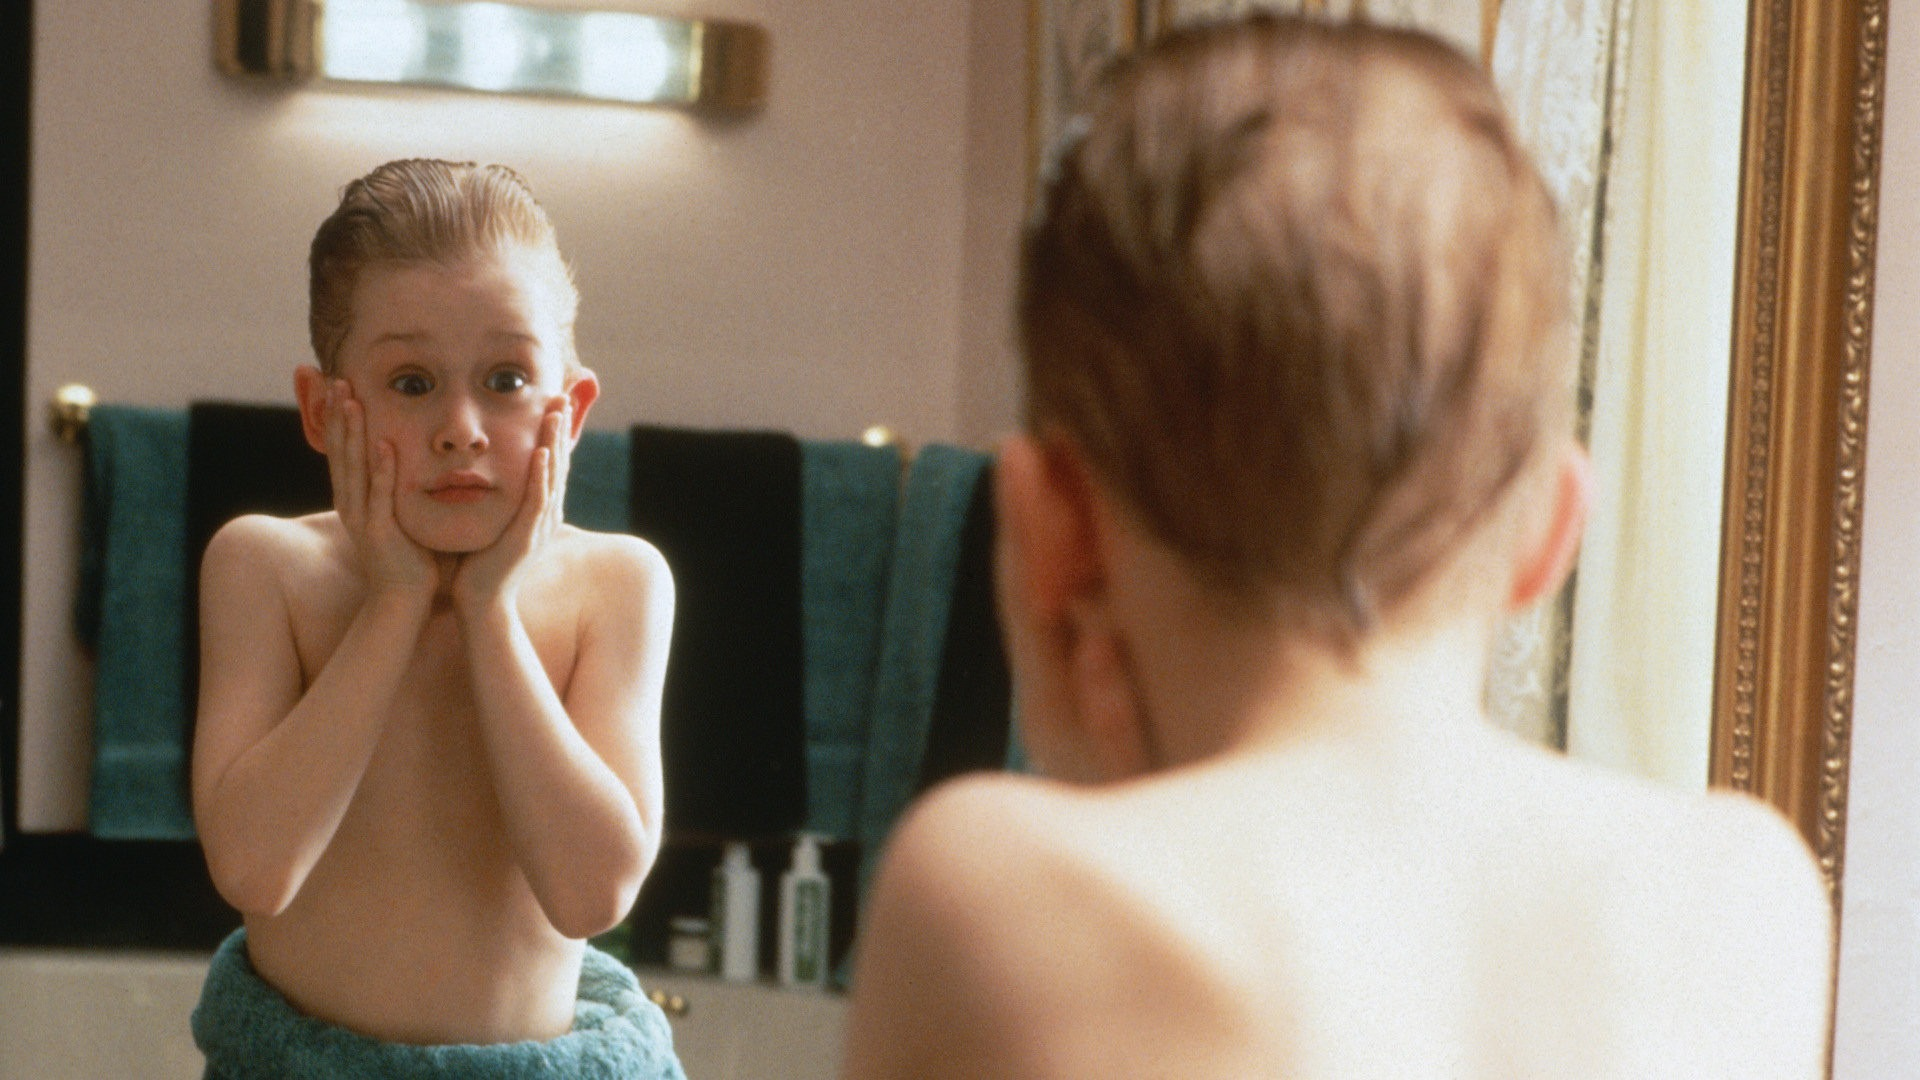 Home Alone Kevin washes up scene